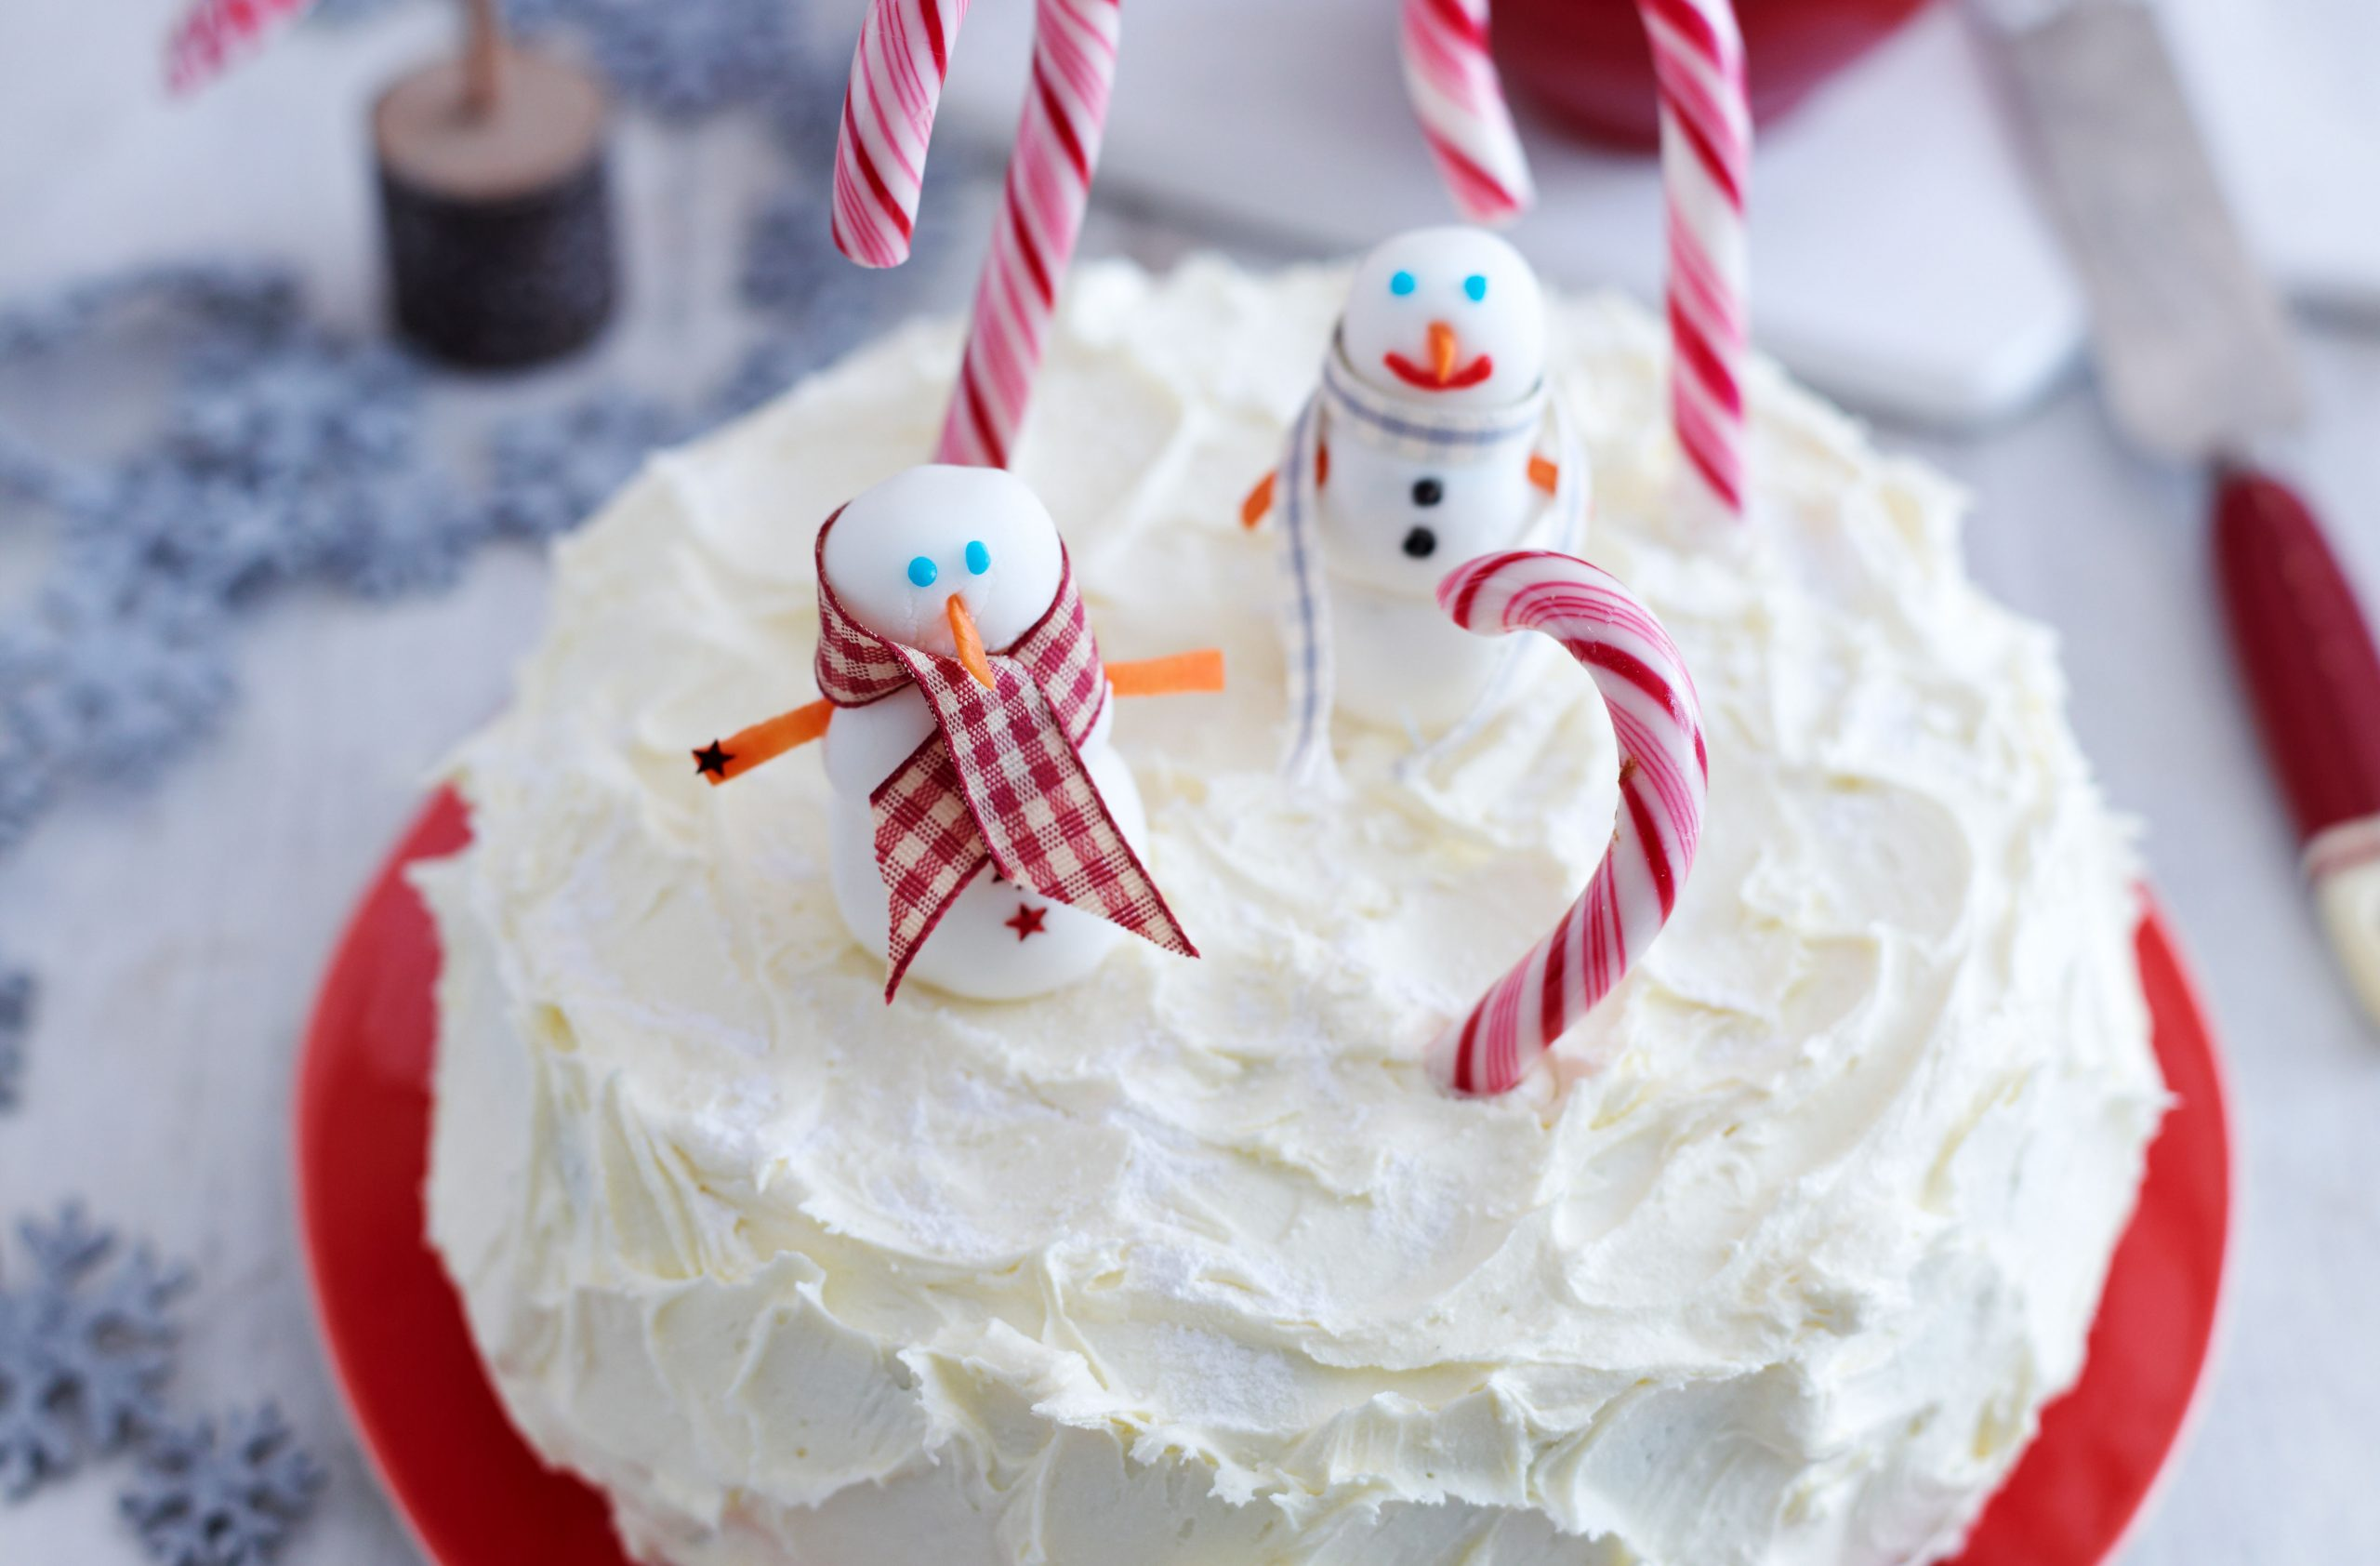 40 Christmas Cake Ideas Simple Christmas Cake Decorations And Designs Goodtoknow